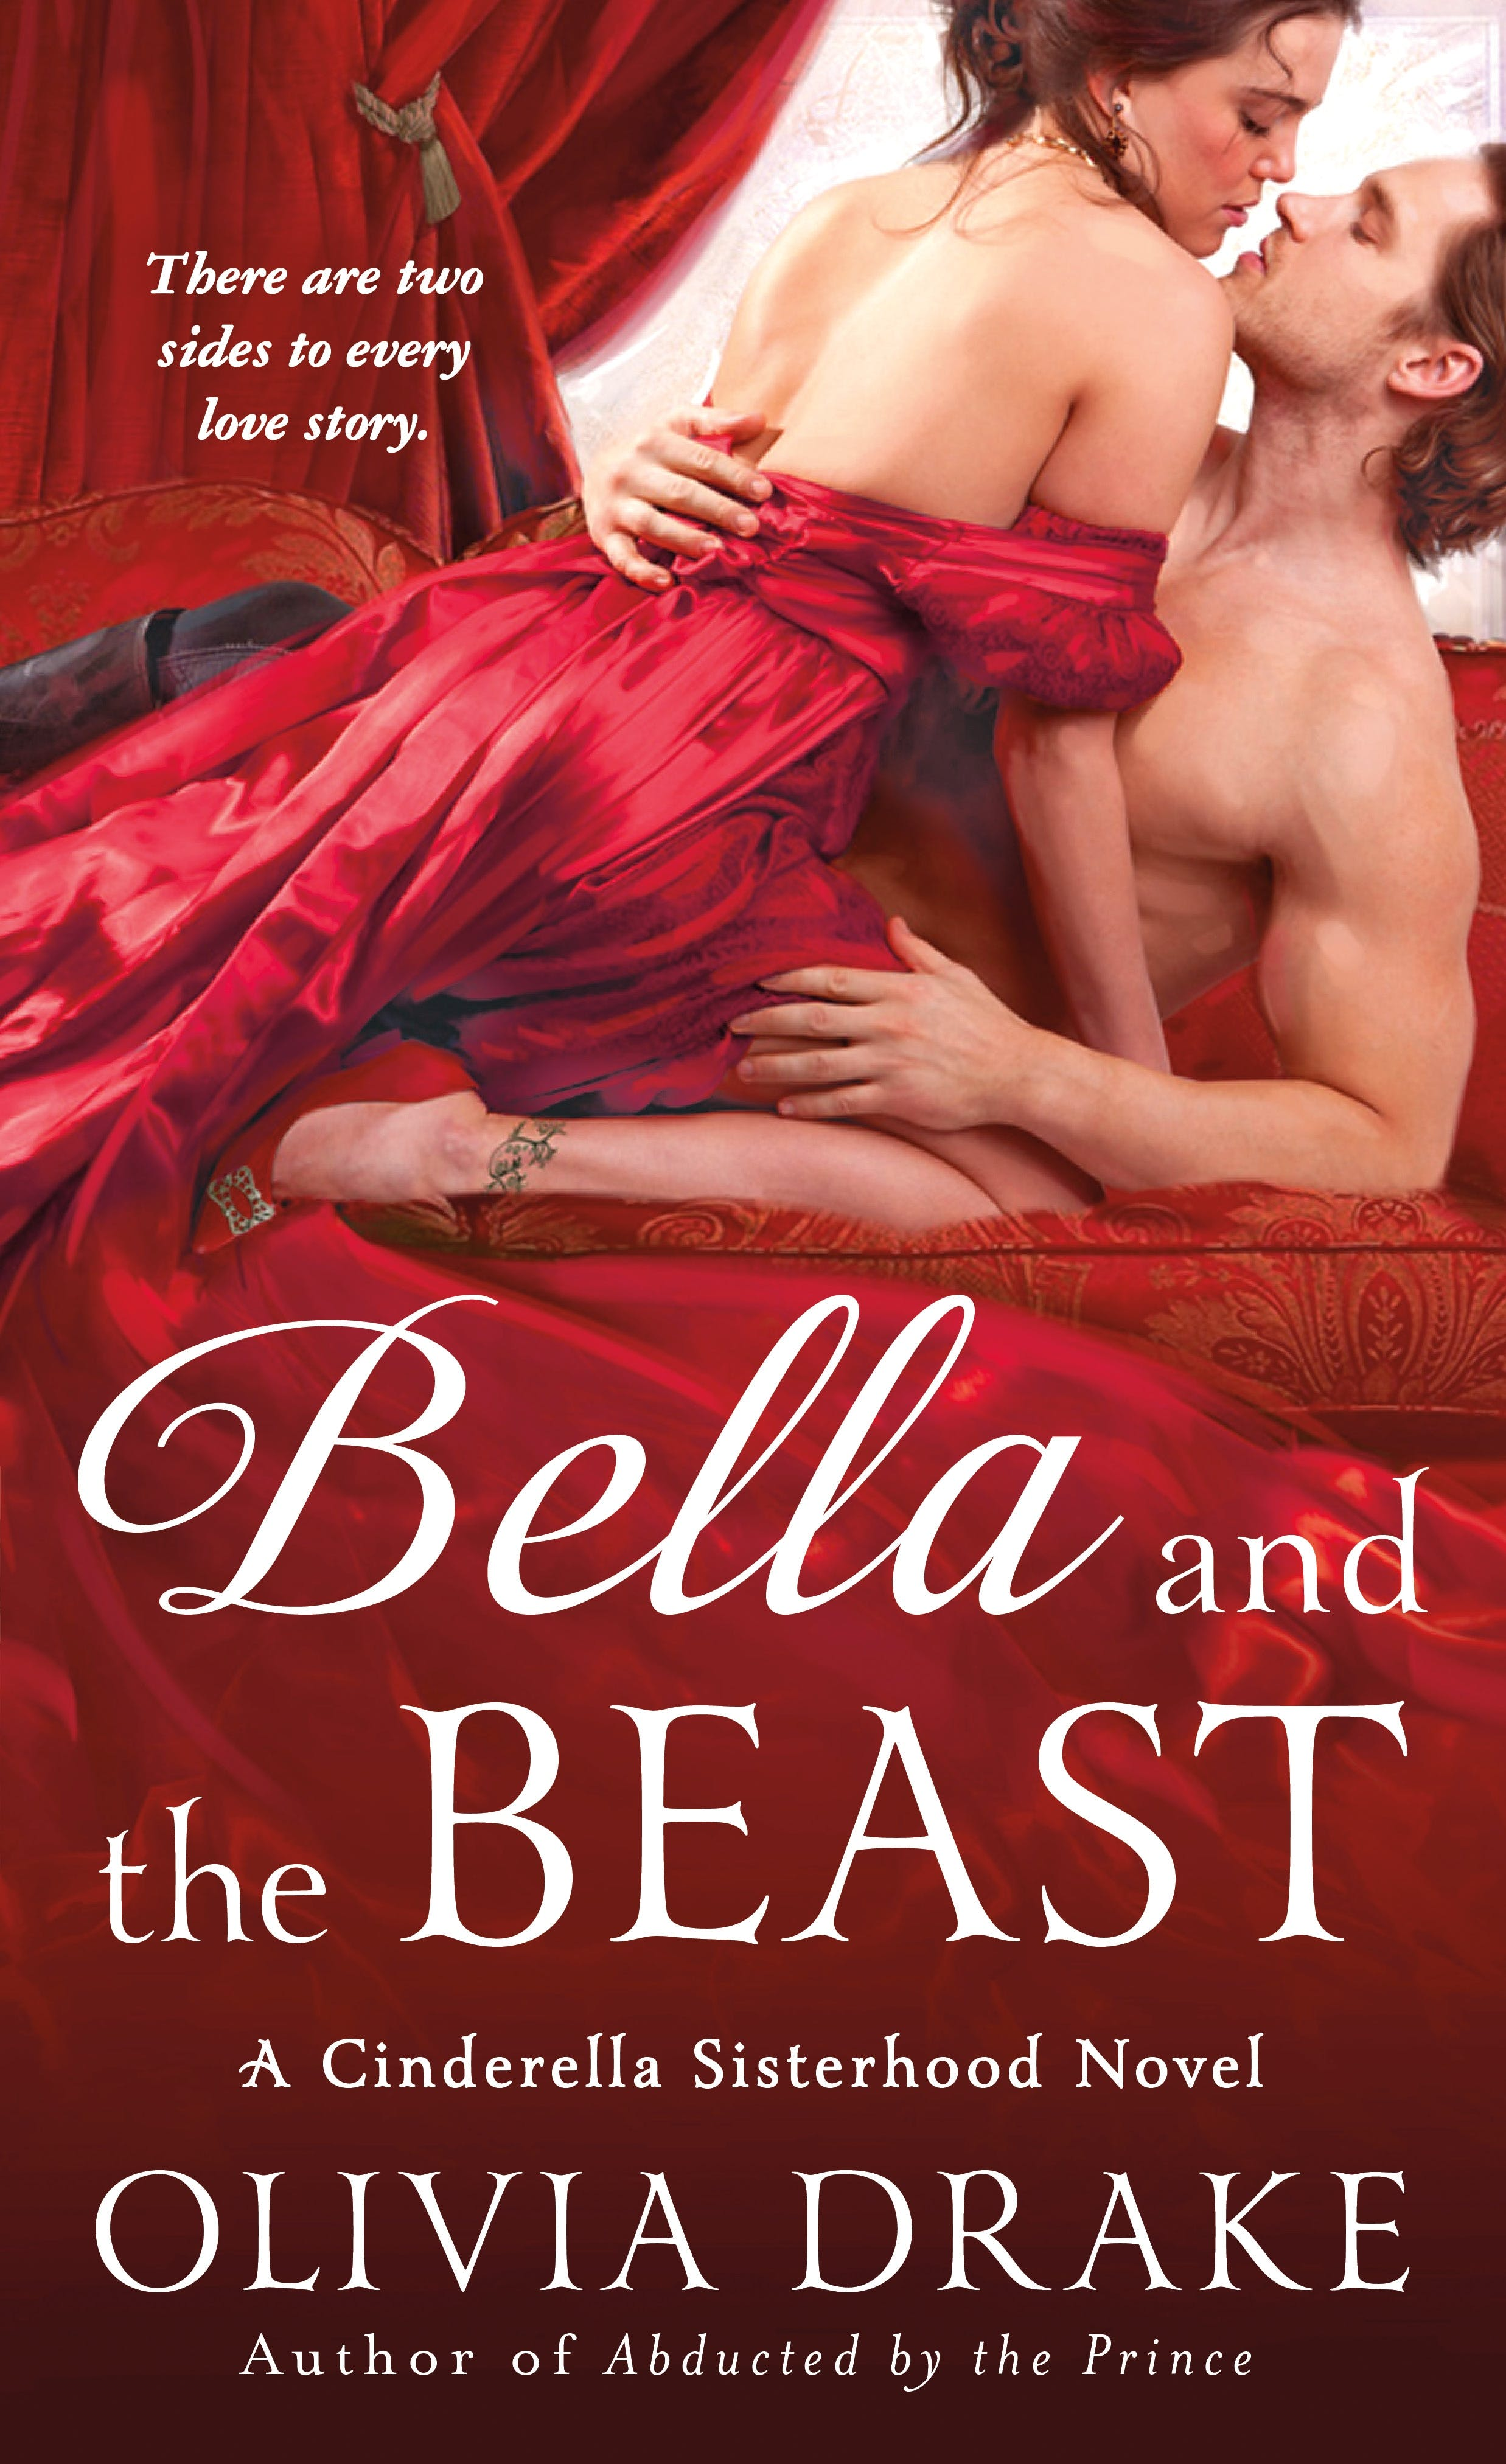 Image of Bella and the Beast